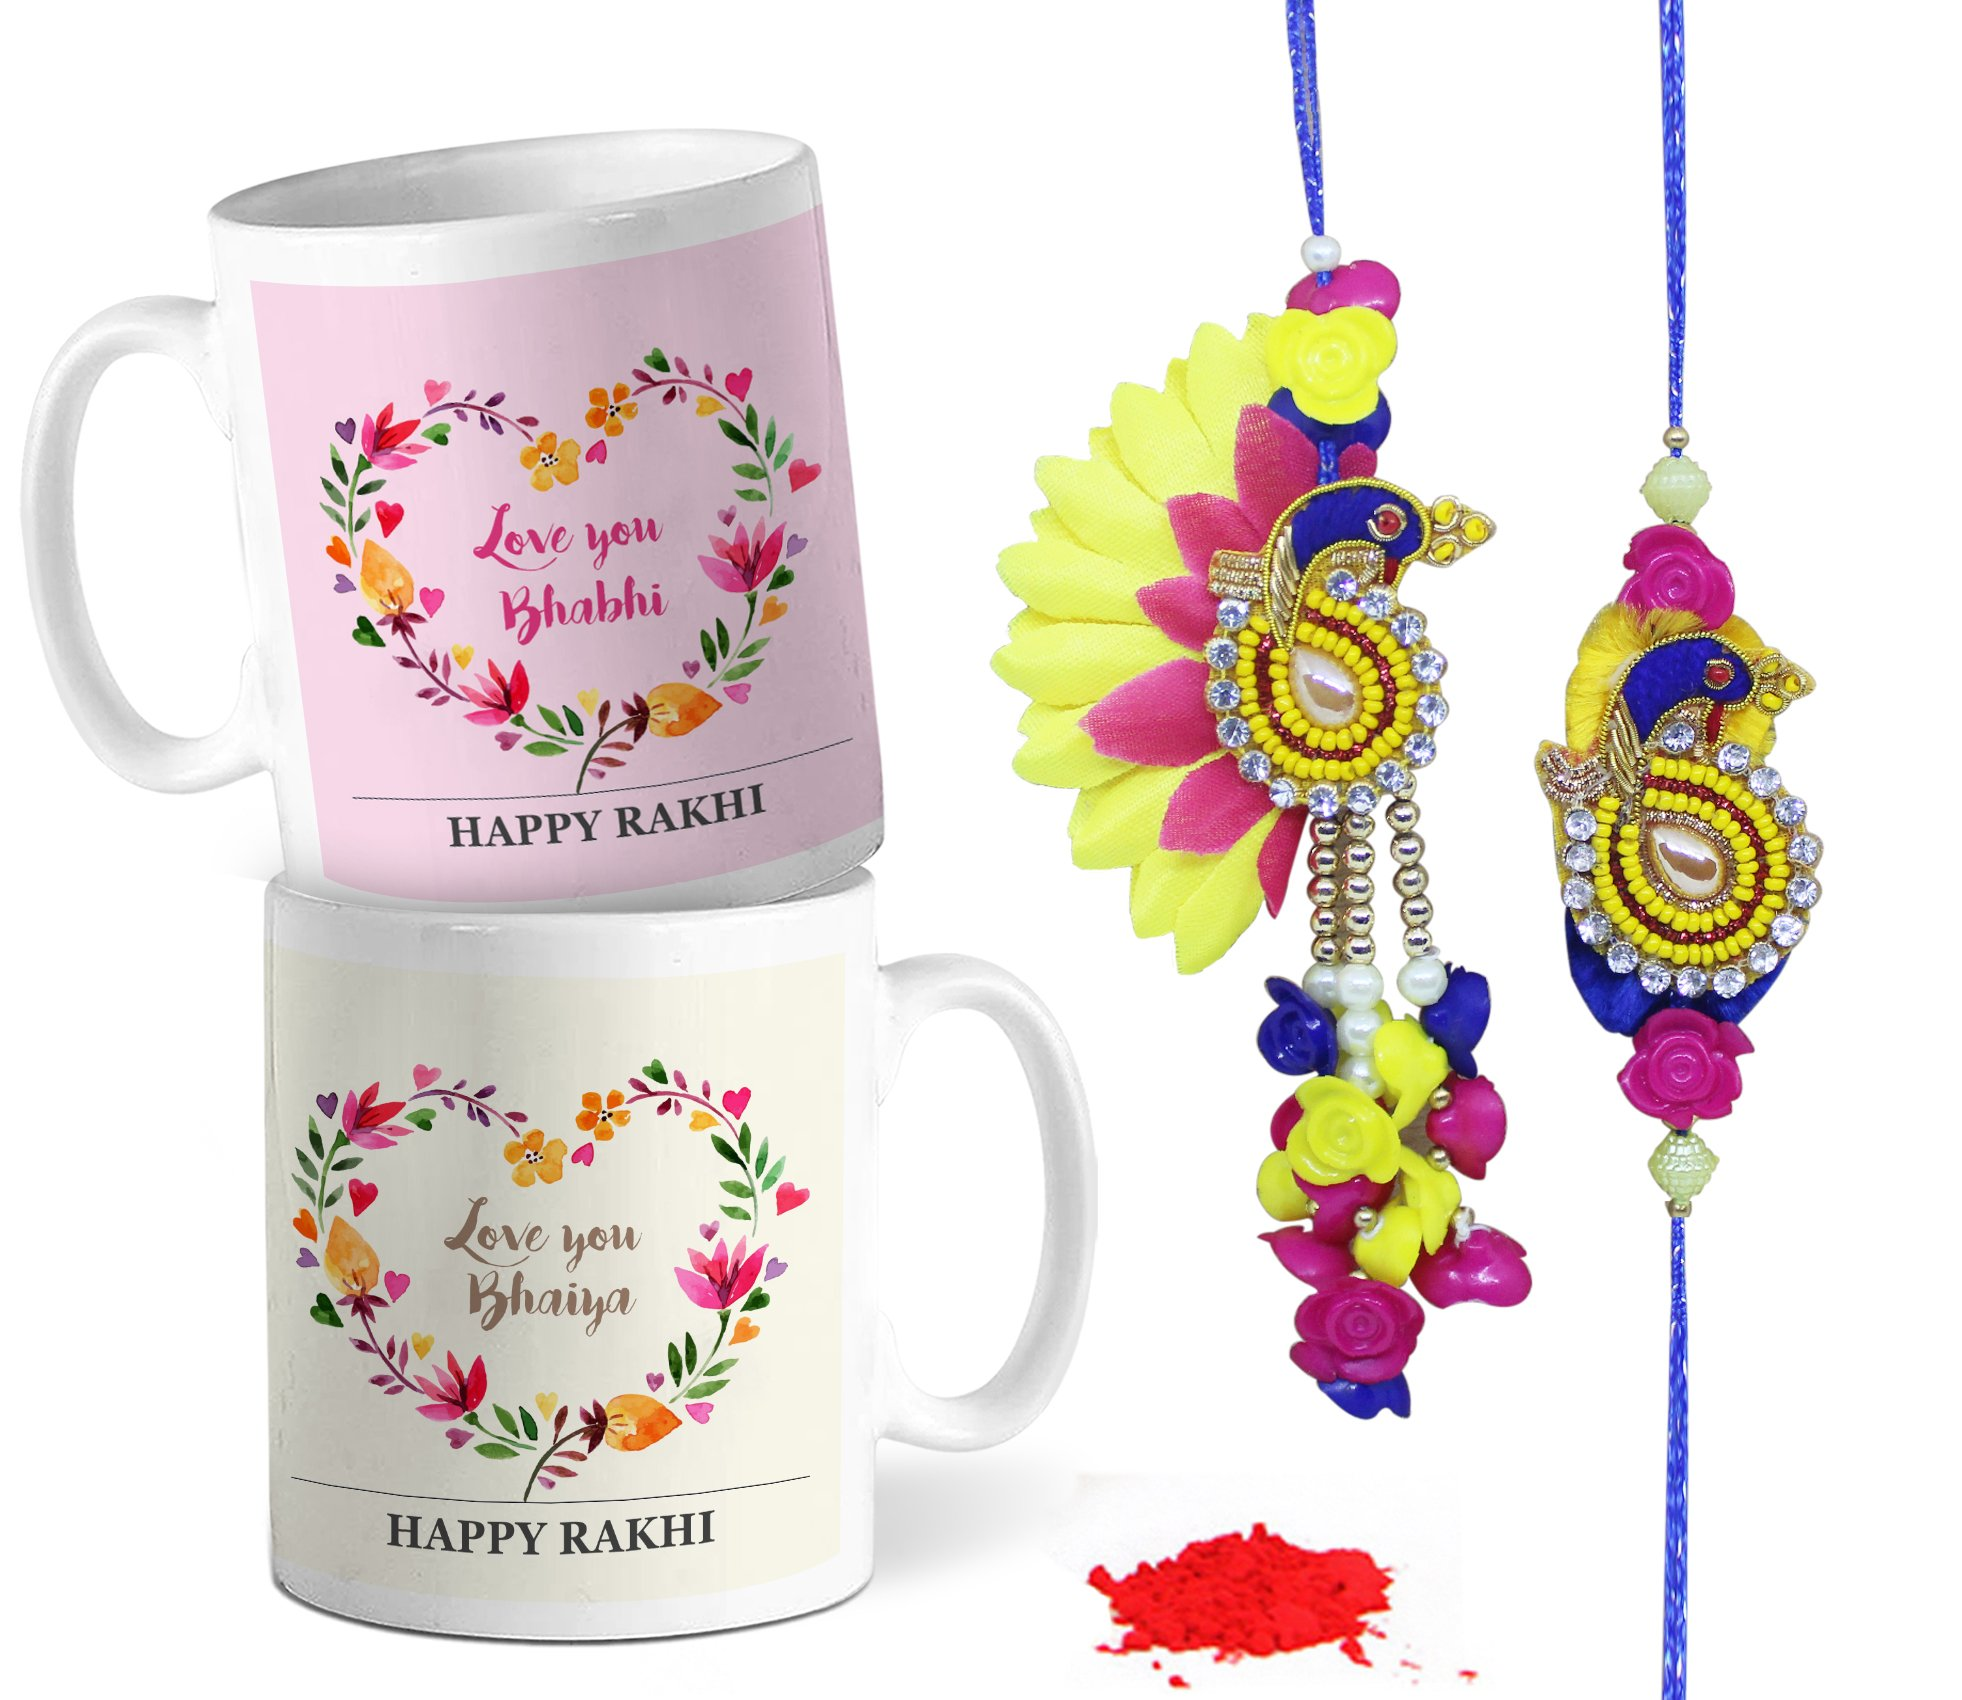 Tied Ribbons Traditional Rakhi Gift Set for Rakshabandhan Lumba Rakhi for Brother and Bhabhi Gift Pack (Designer Lumba Rakhi Set, Printed Coffee Mug, Rakshabandhan Special Card)